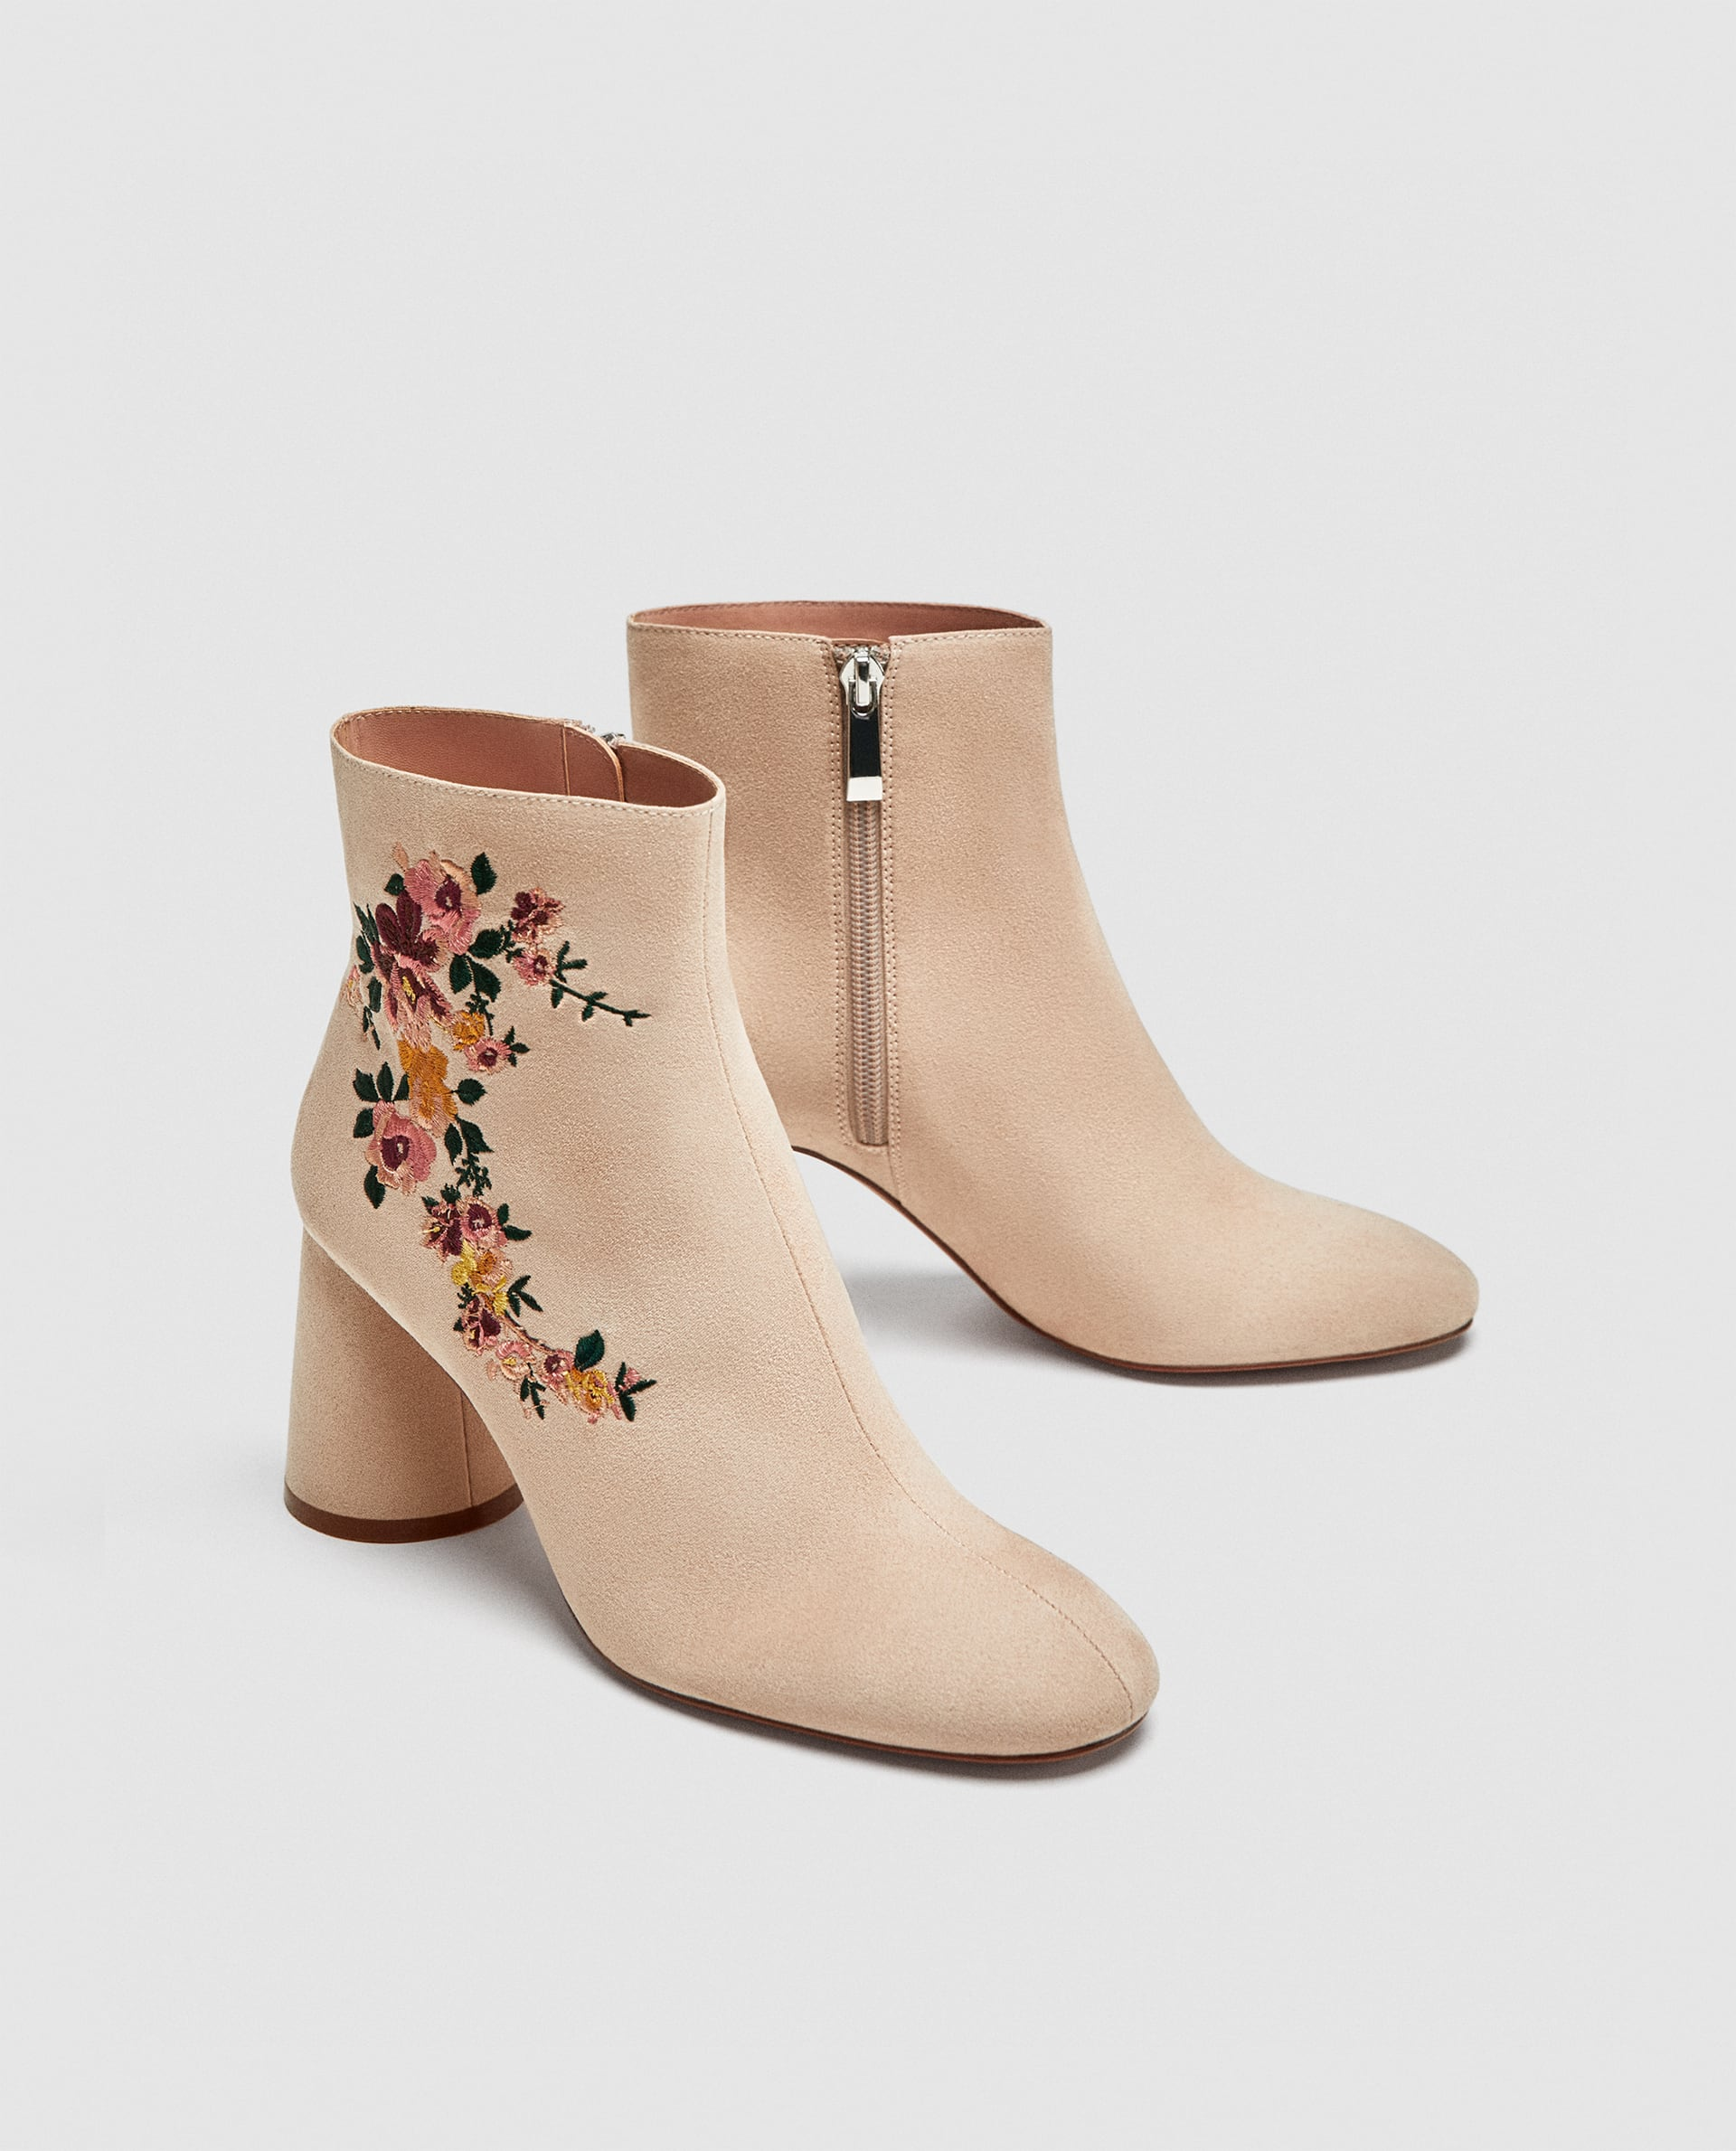 7 past trends - A shopping selection - zara boots